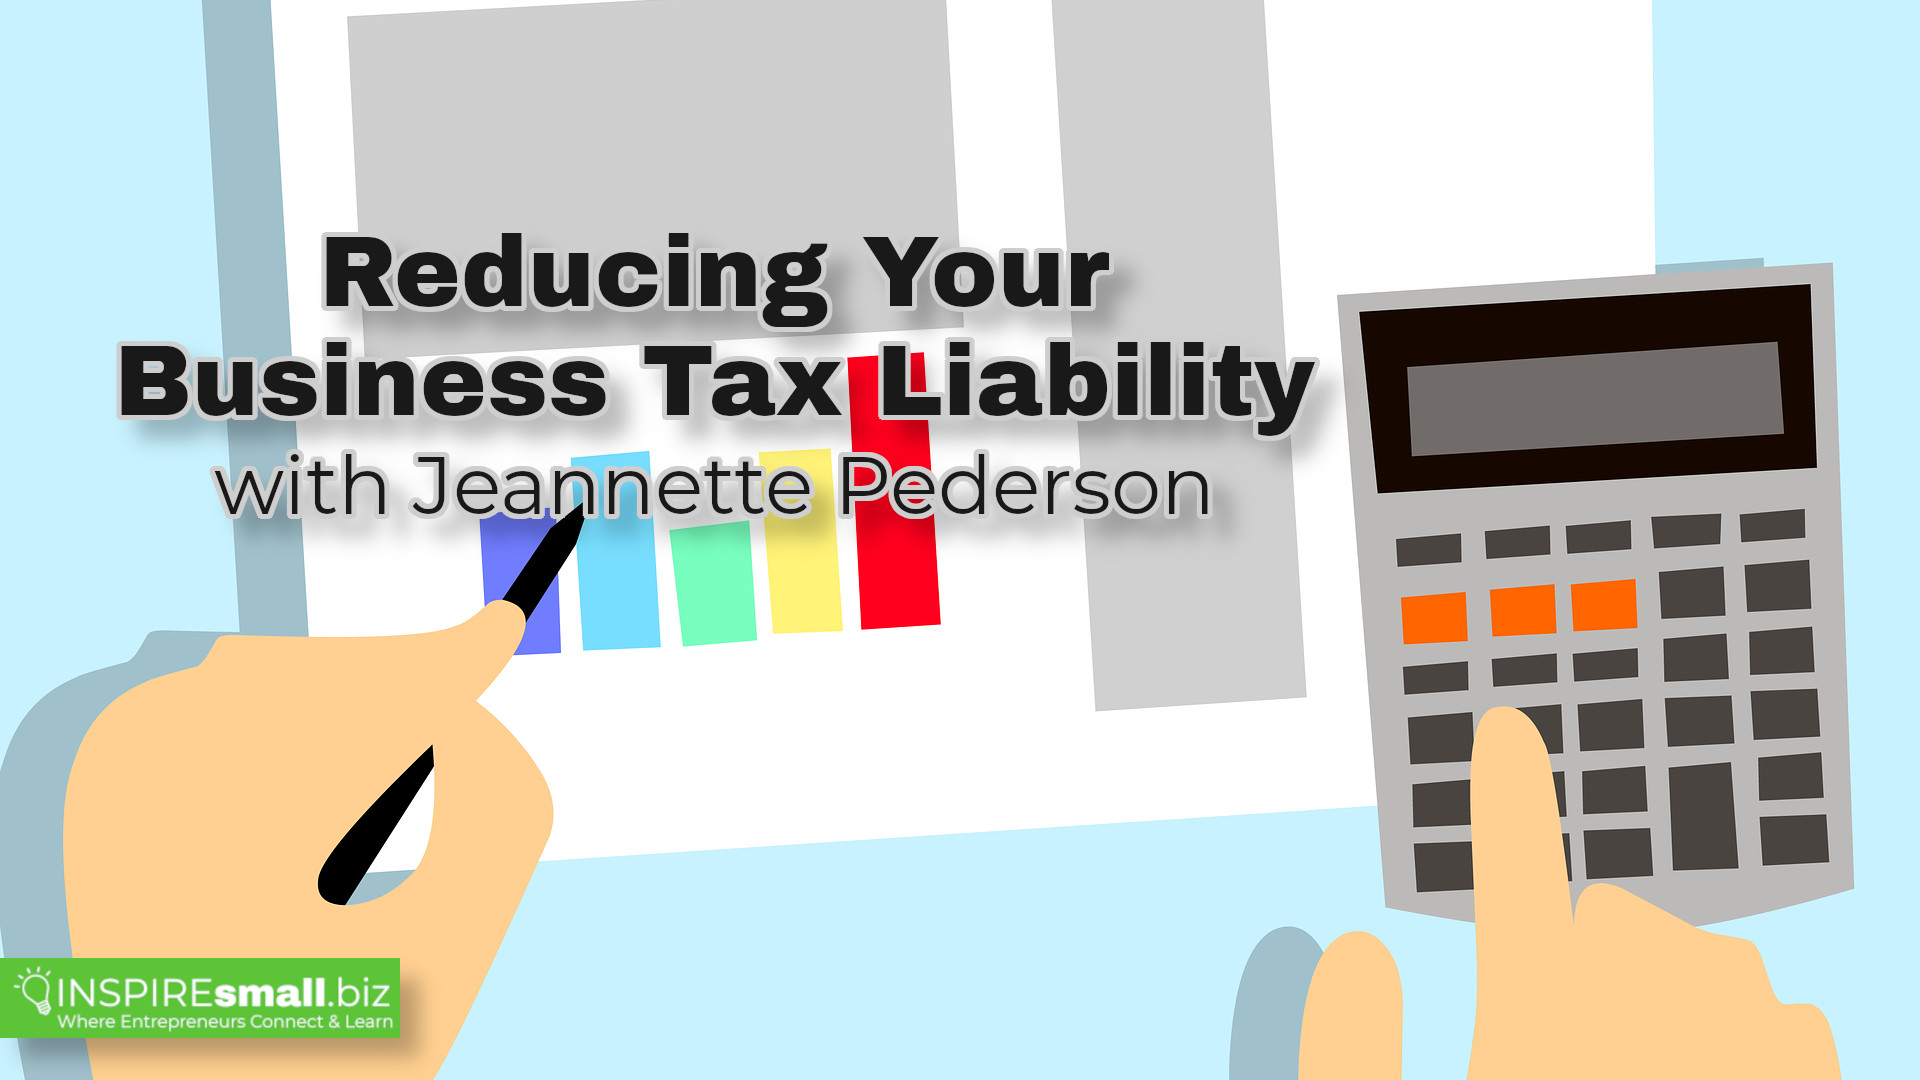 Reducing Your Business Tax Liability - INSPIREsmall.biz Monday Networking